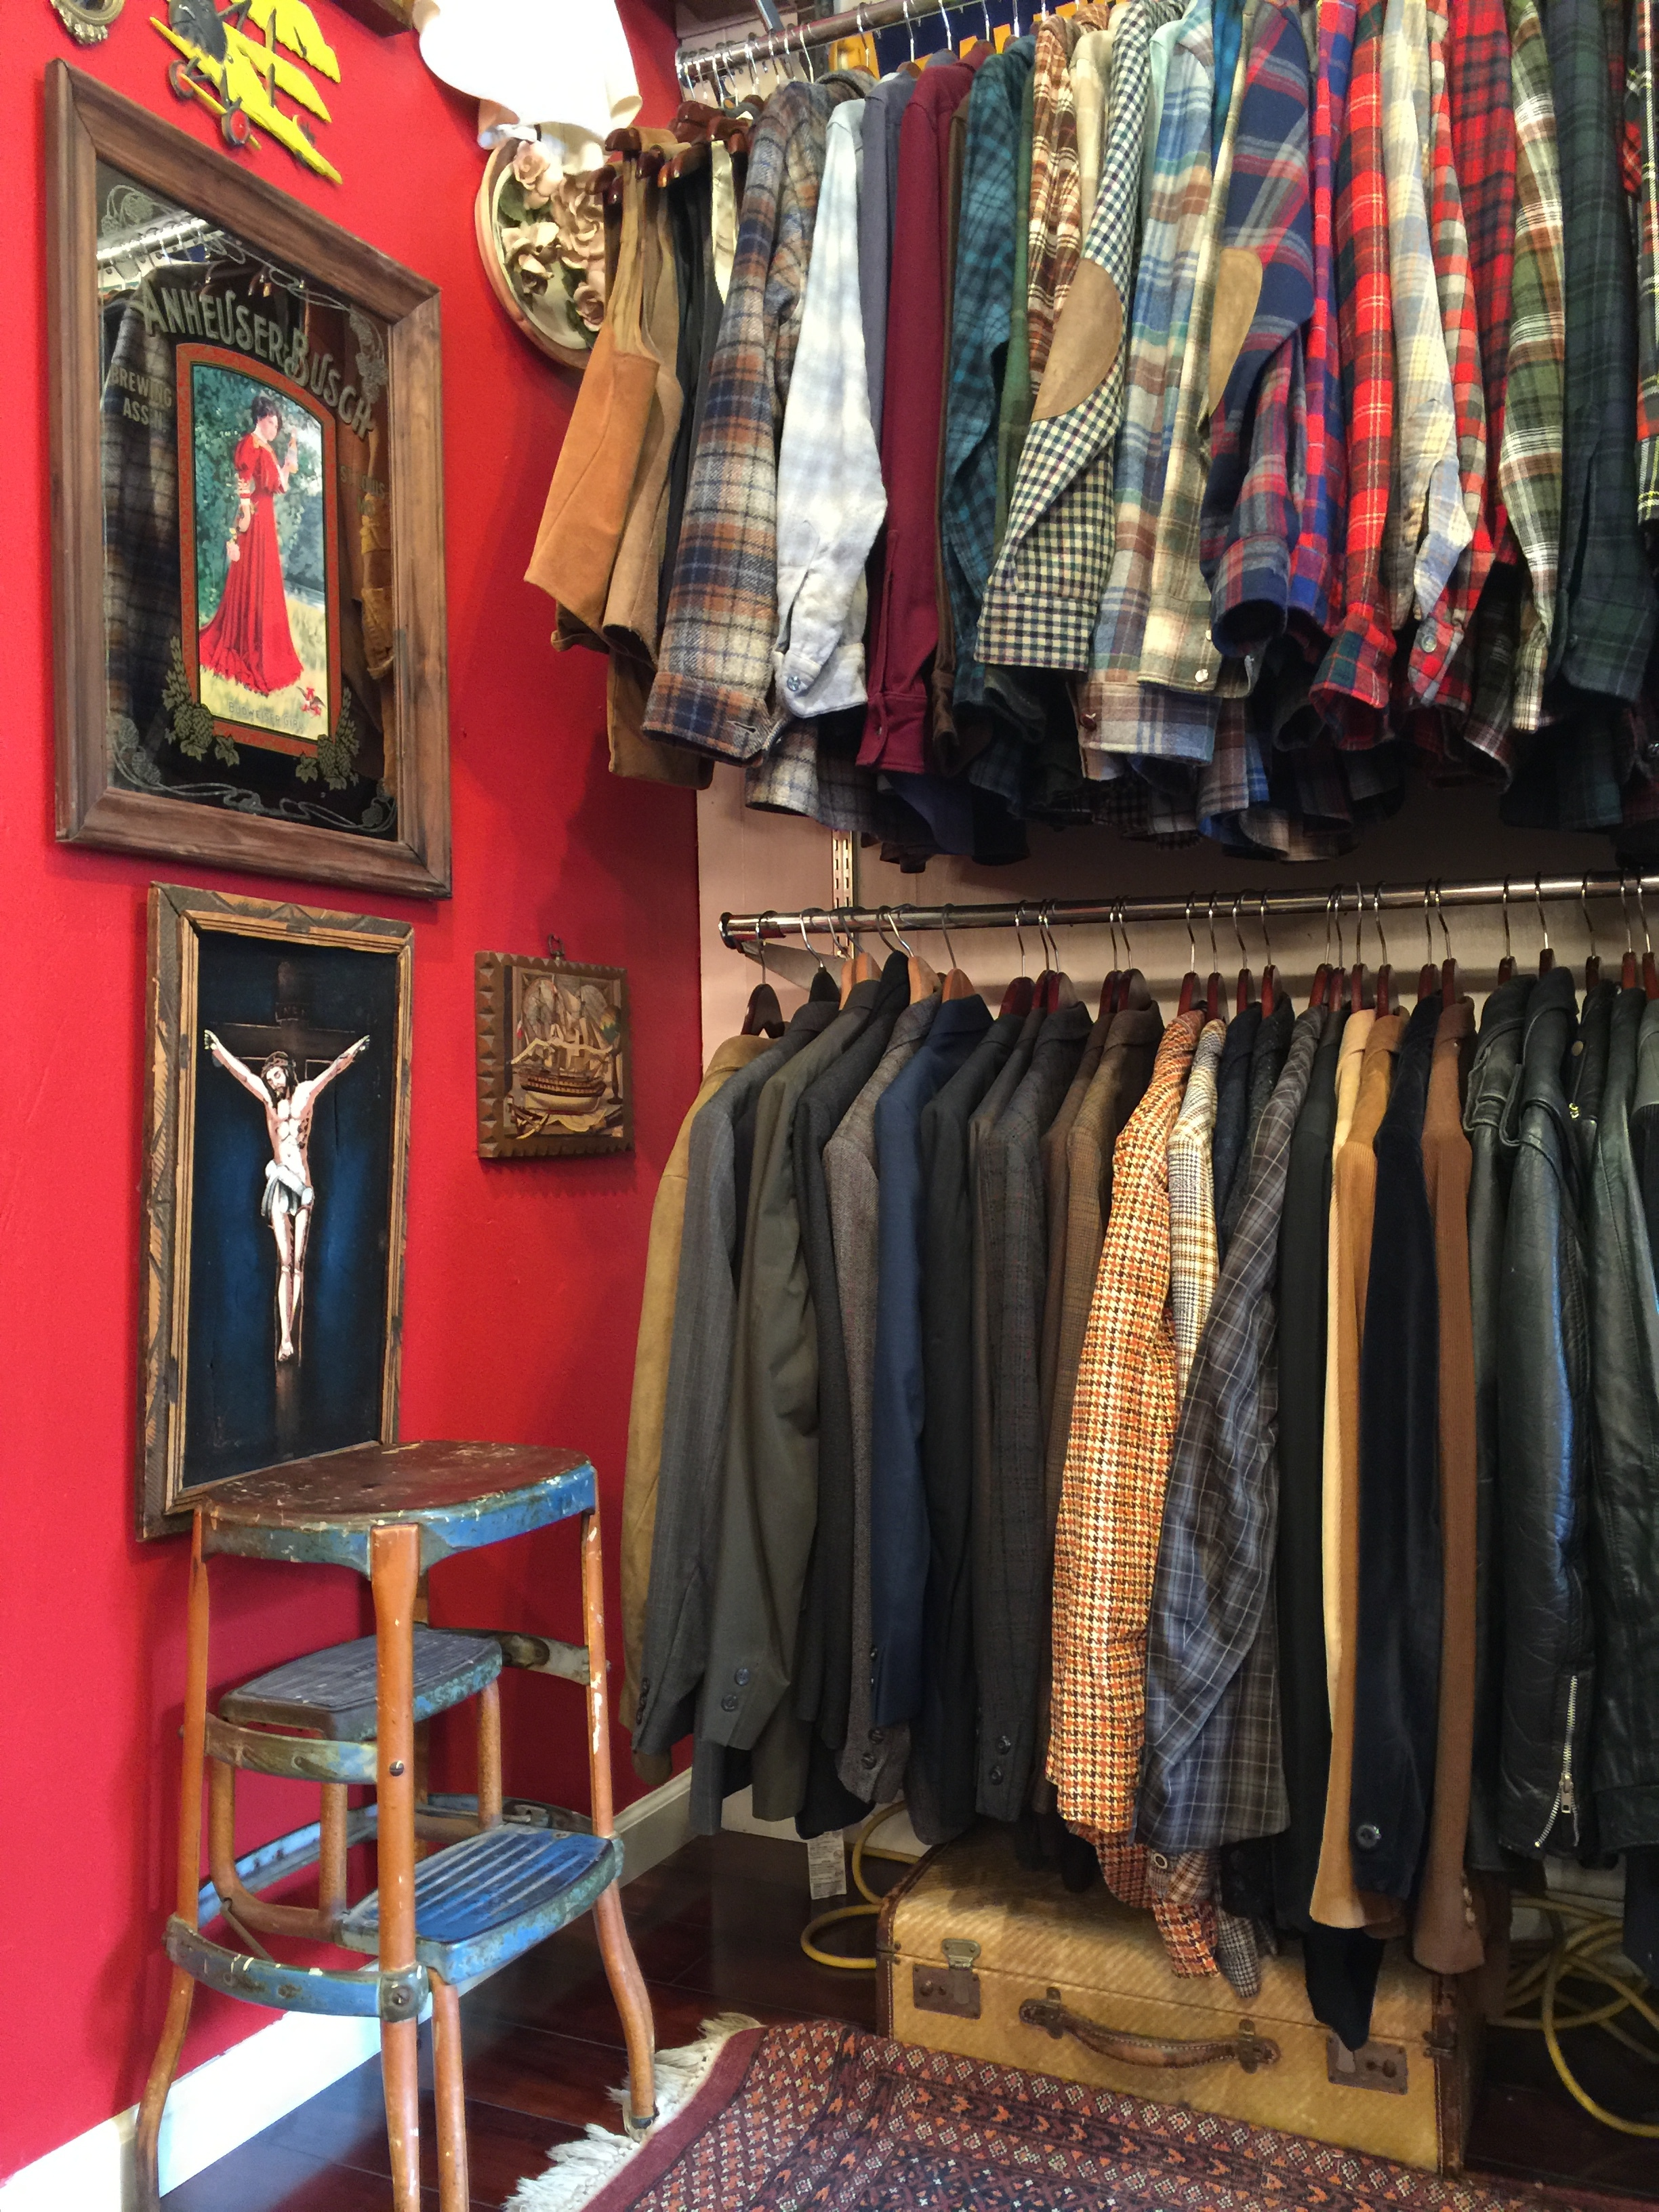 Personally obsessed with Harley Davidson, Racks has become the go-to for the largest menswear collection + motorcycle boots in midtown.